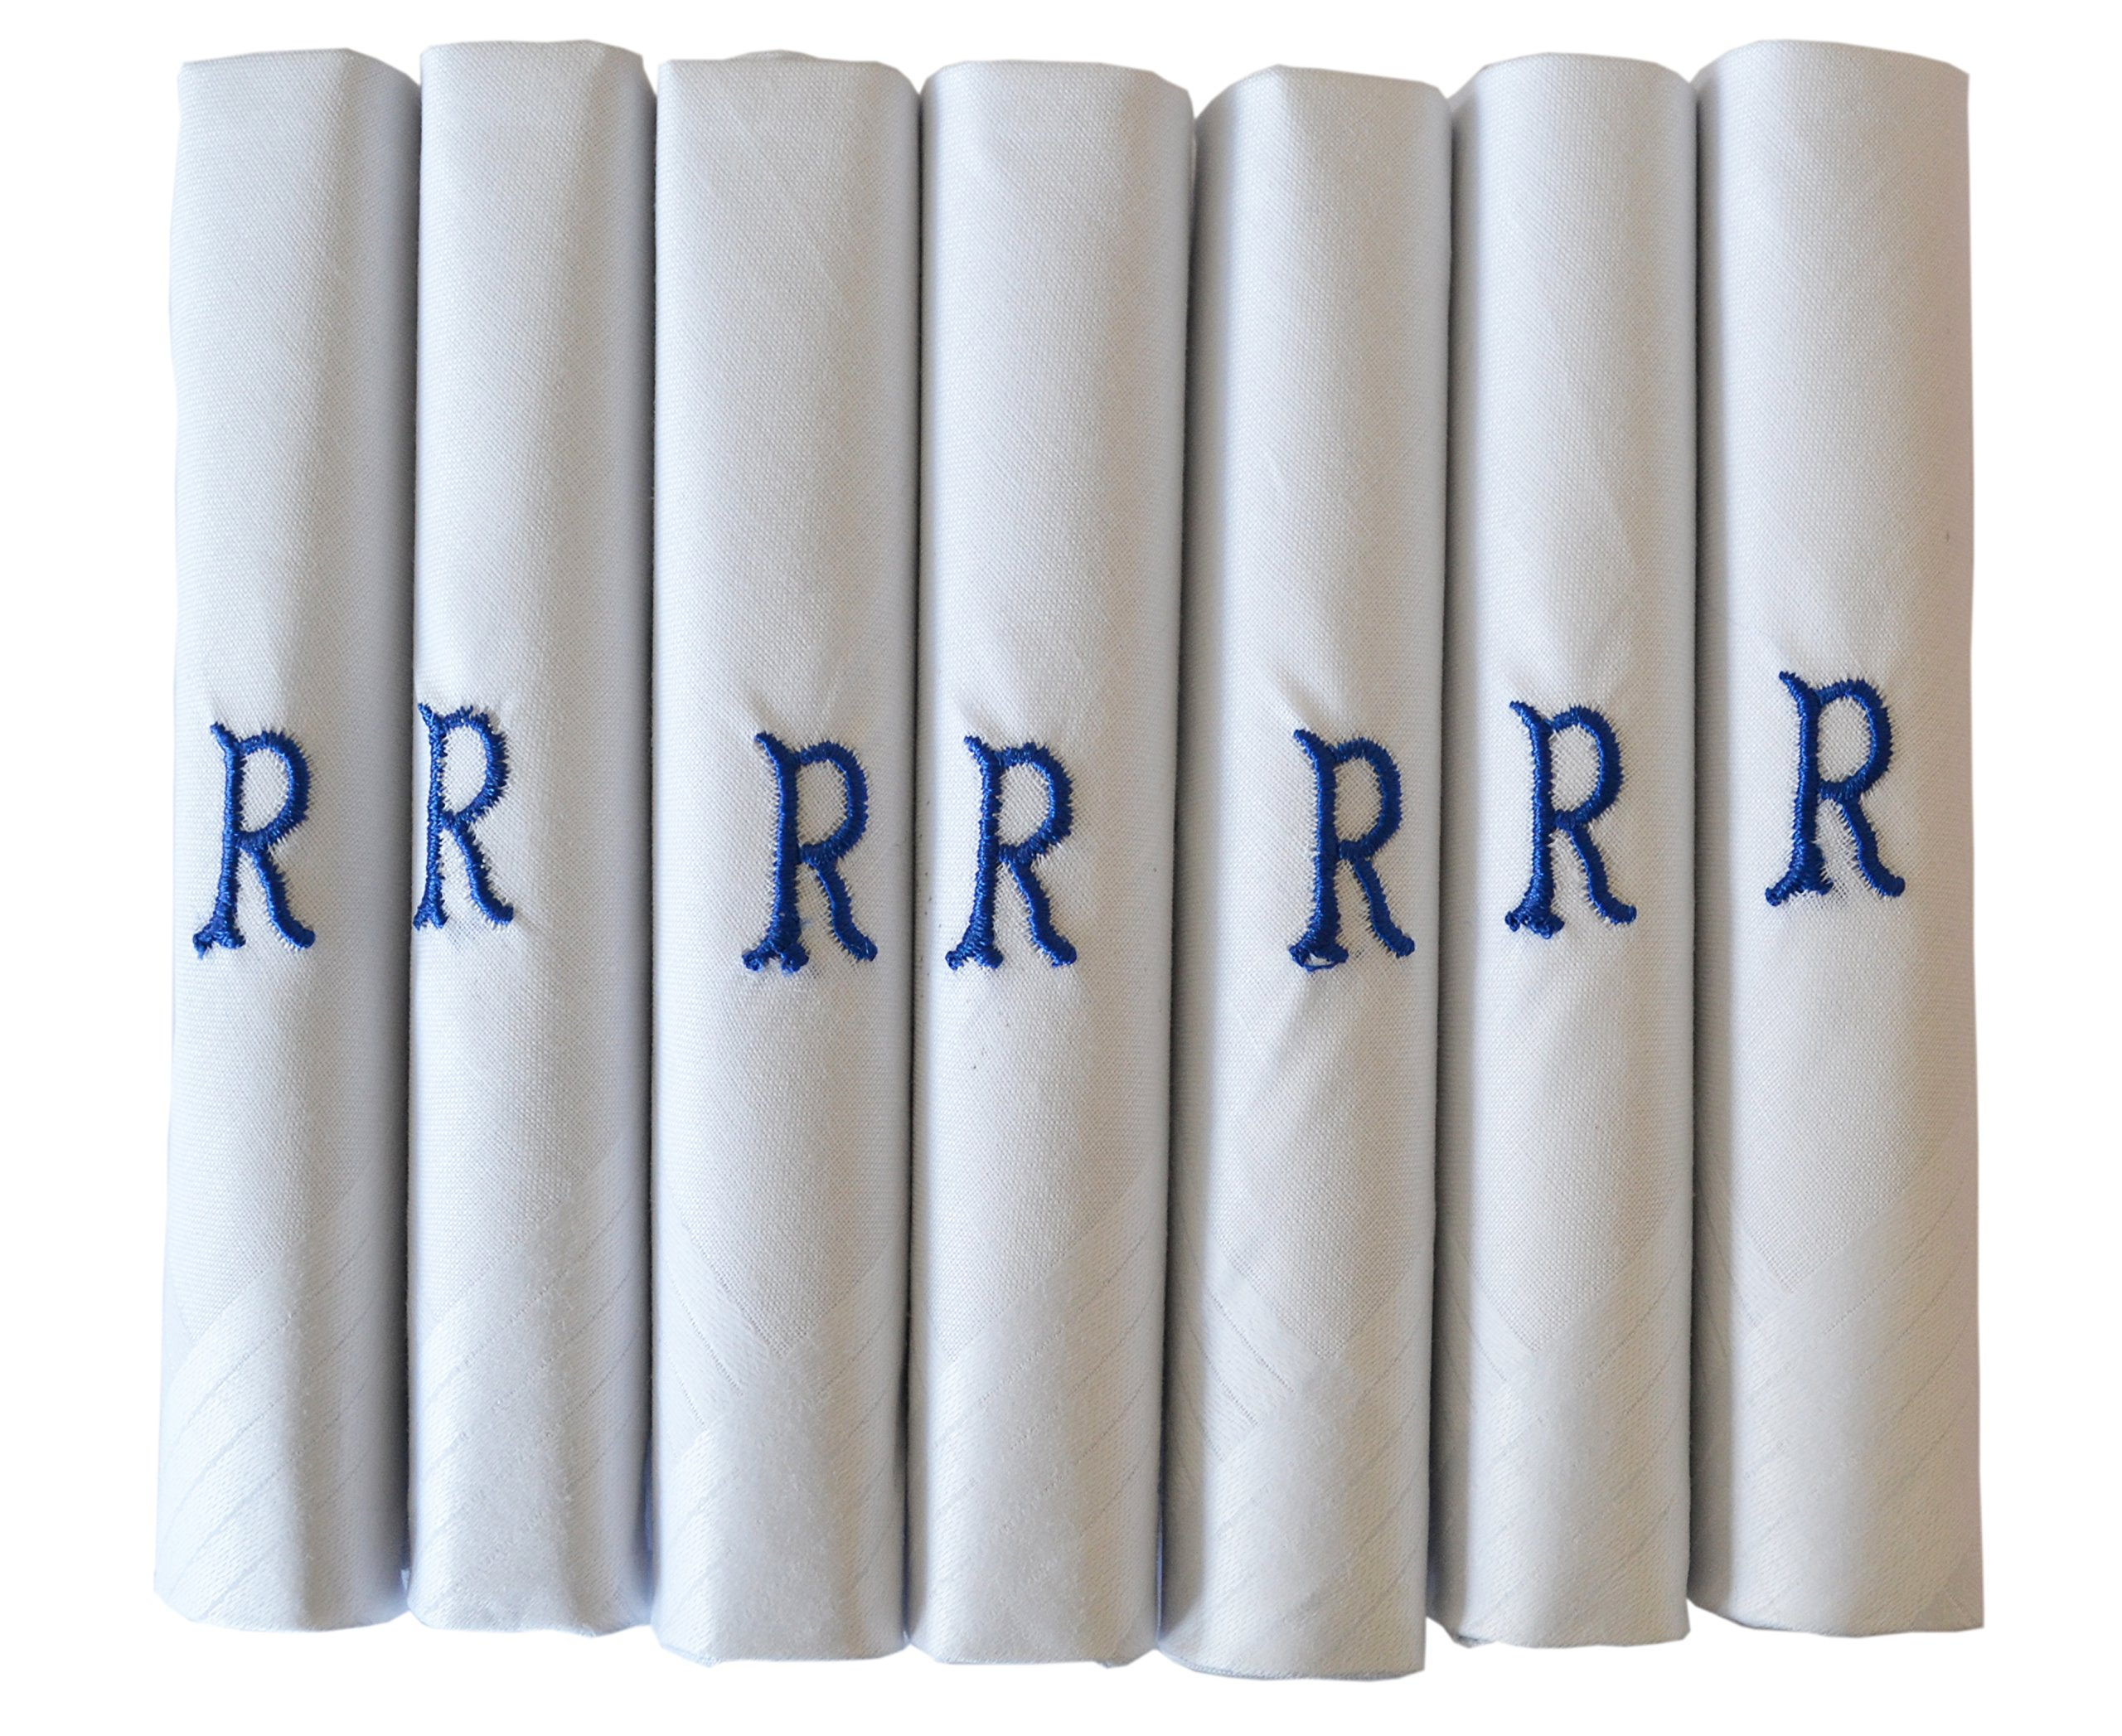 7 Pack Of Mens White Satin Bordered Handkerchiefs With Initials Various Letters